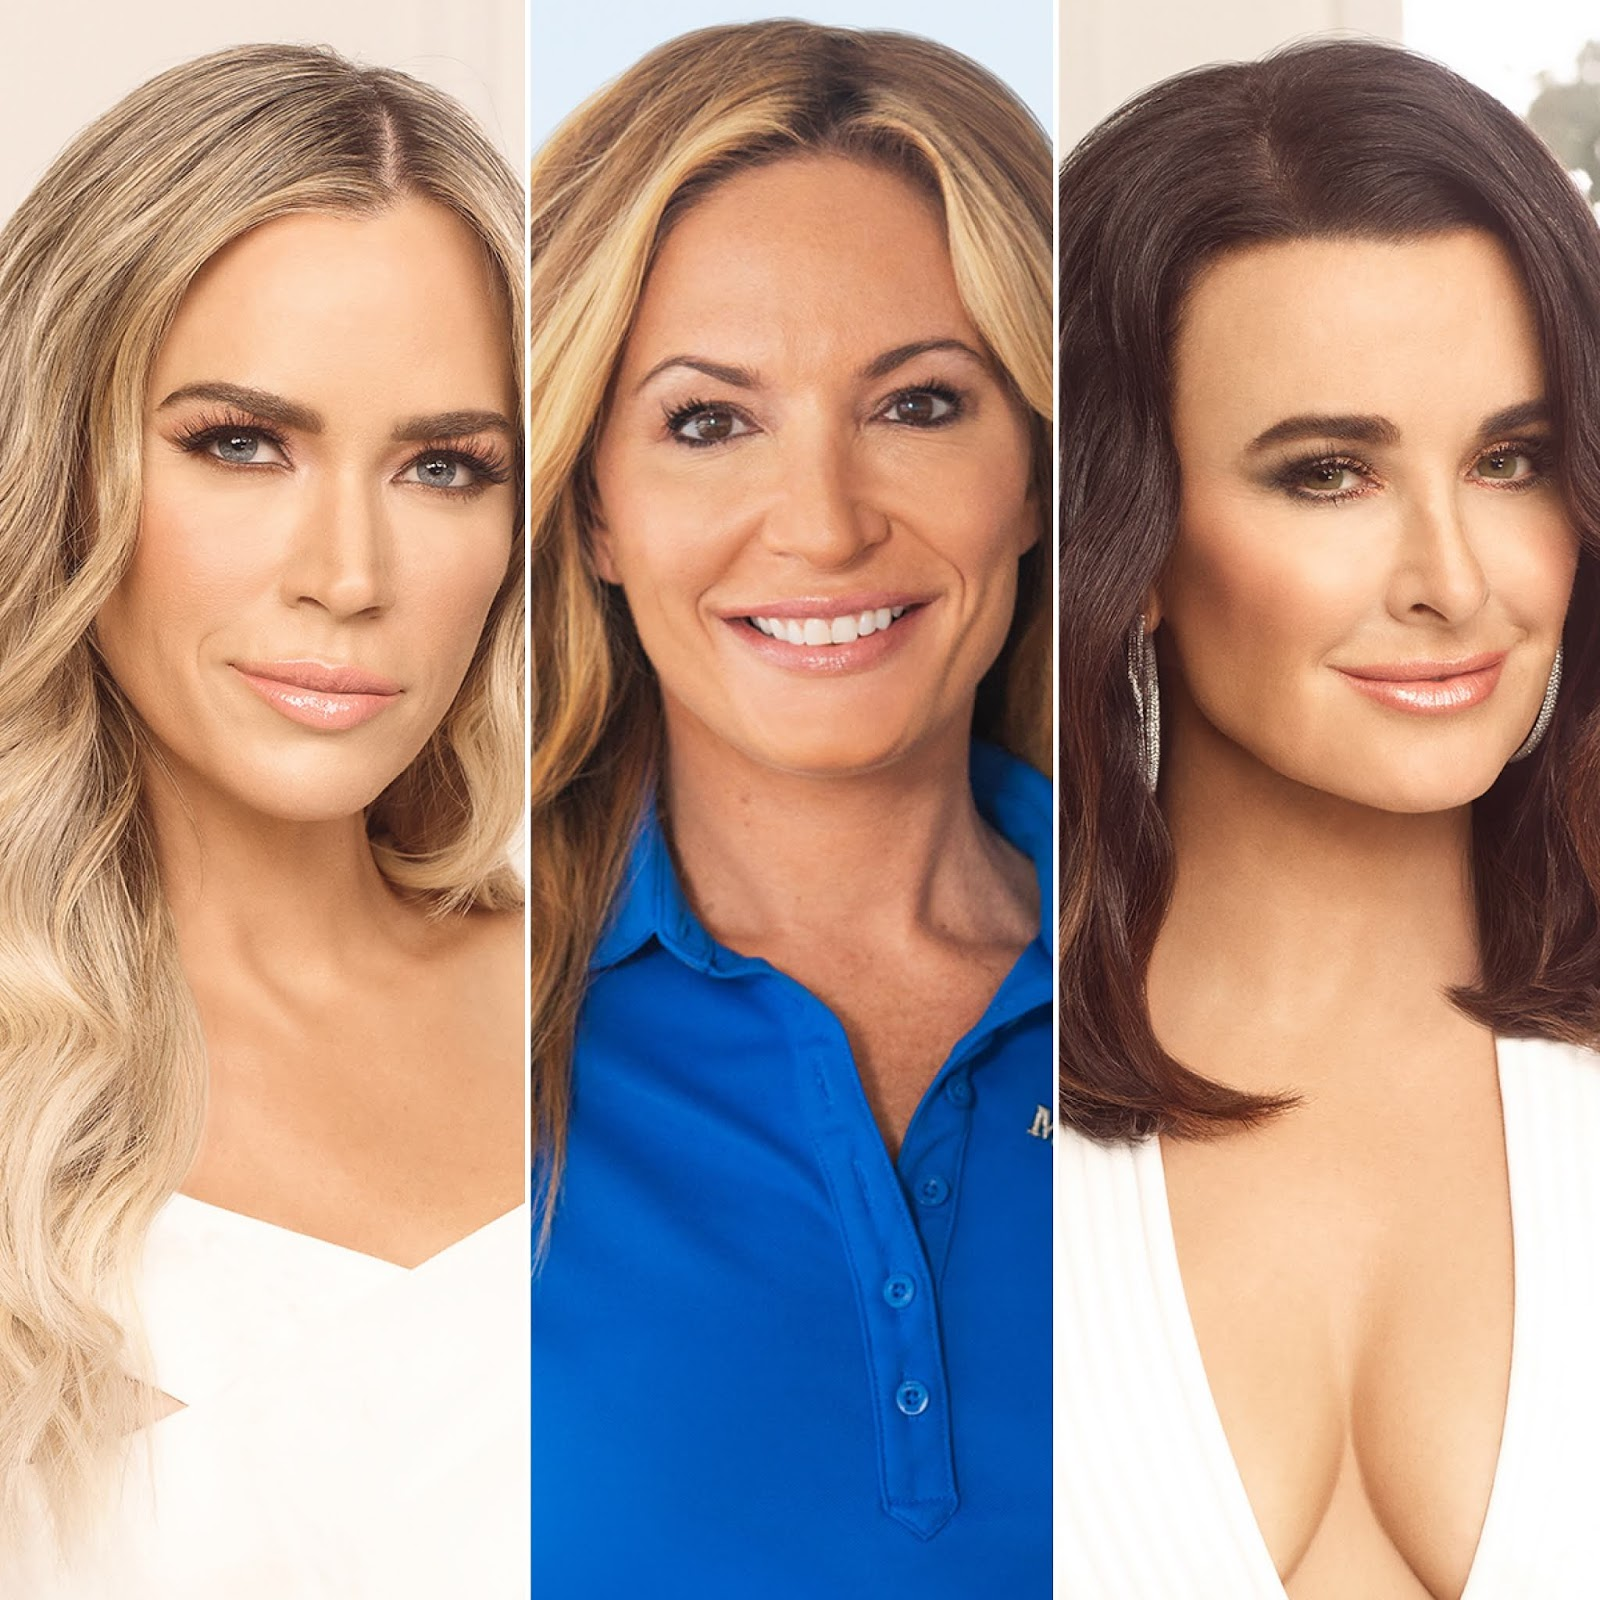 iRealHousewives | The 411 On American + International Real